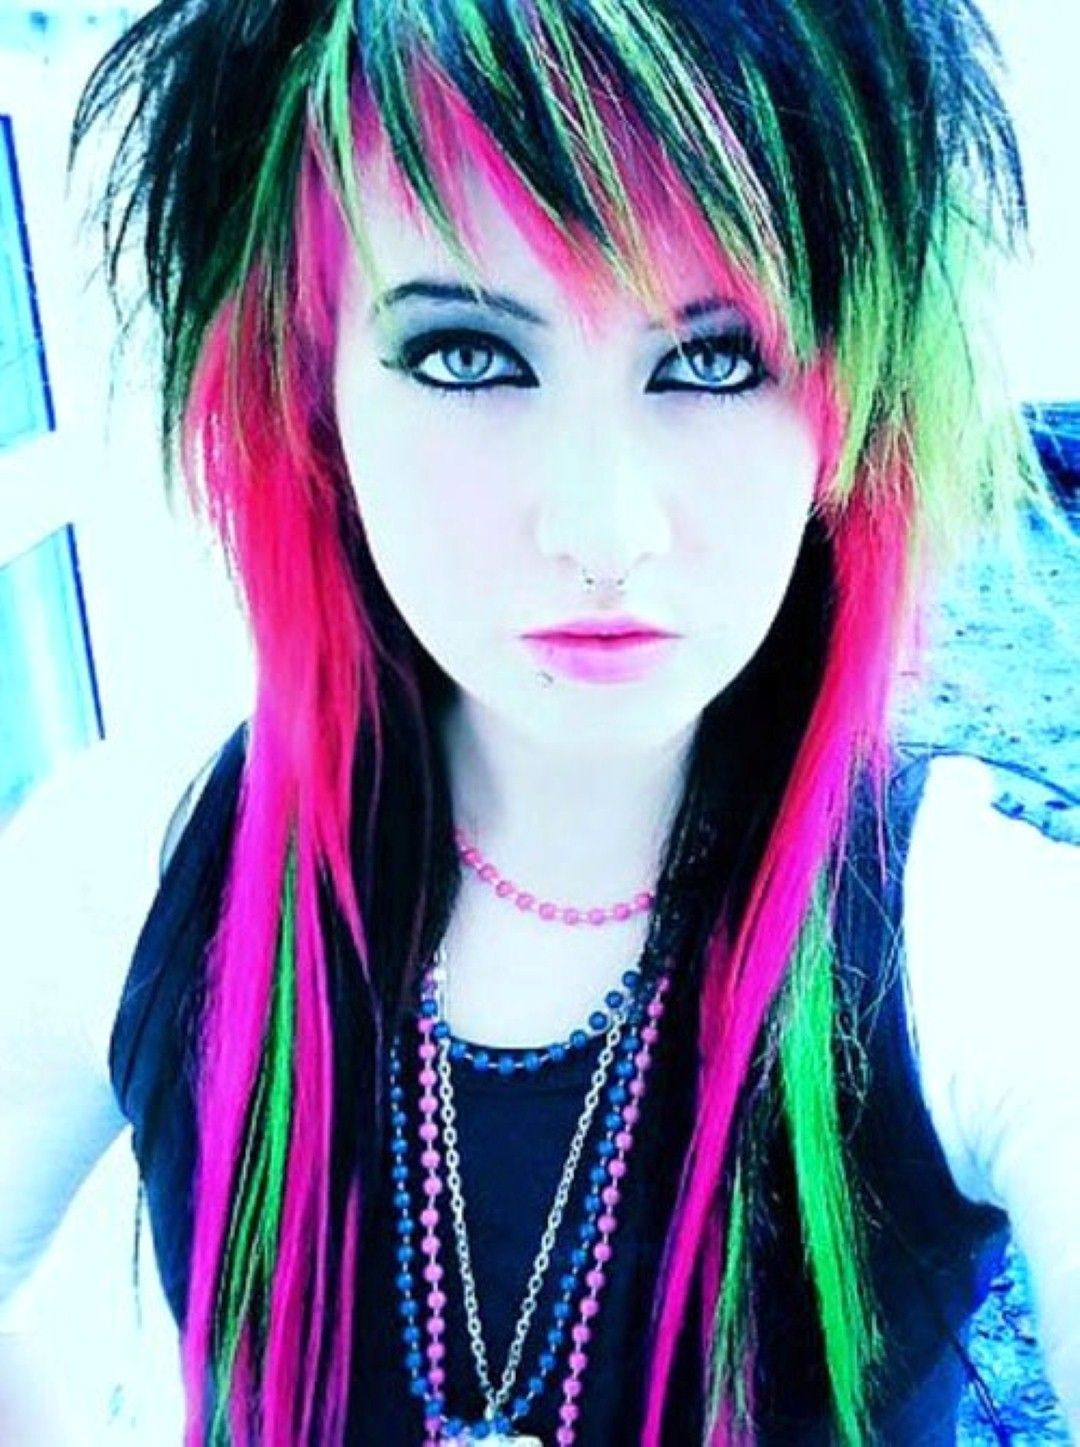 Emo hairstyles for girls hair pinterest emo hairstyles emo